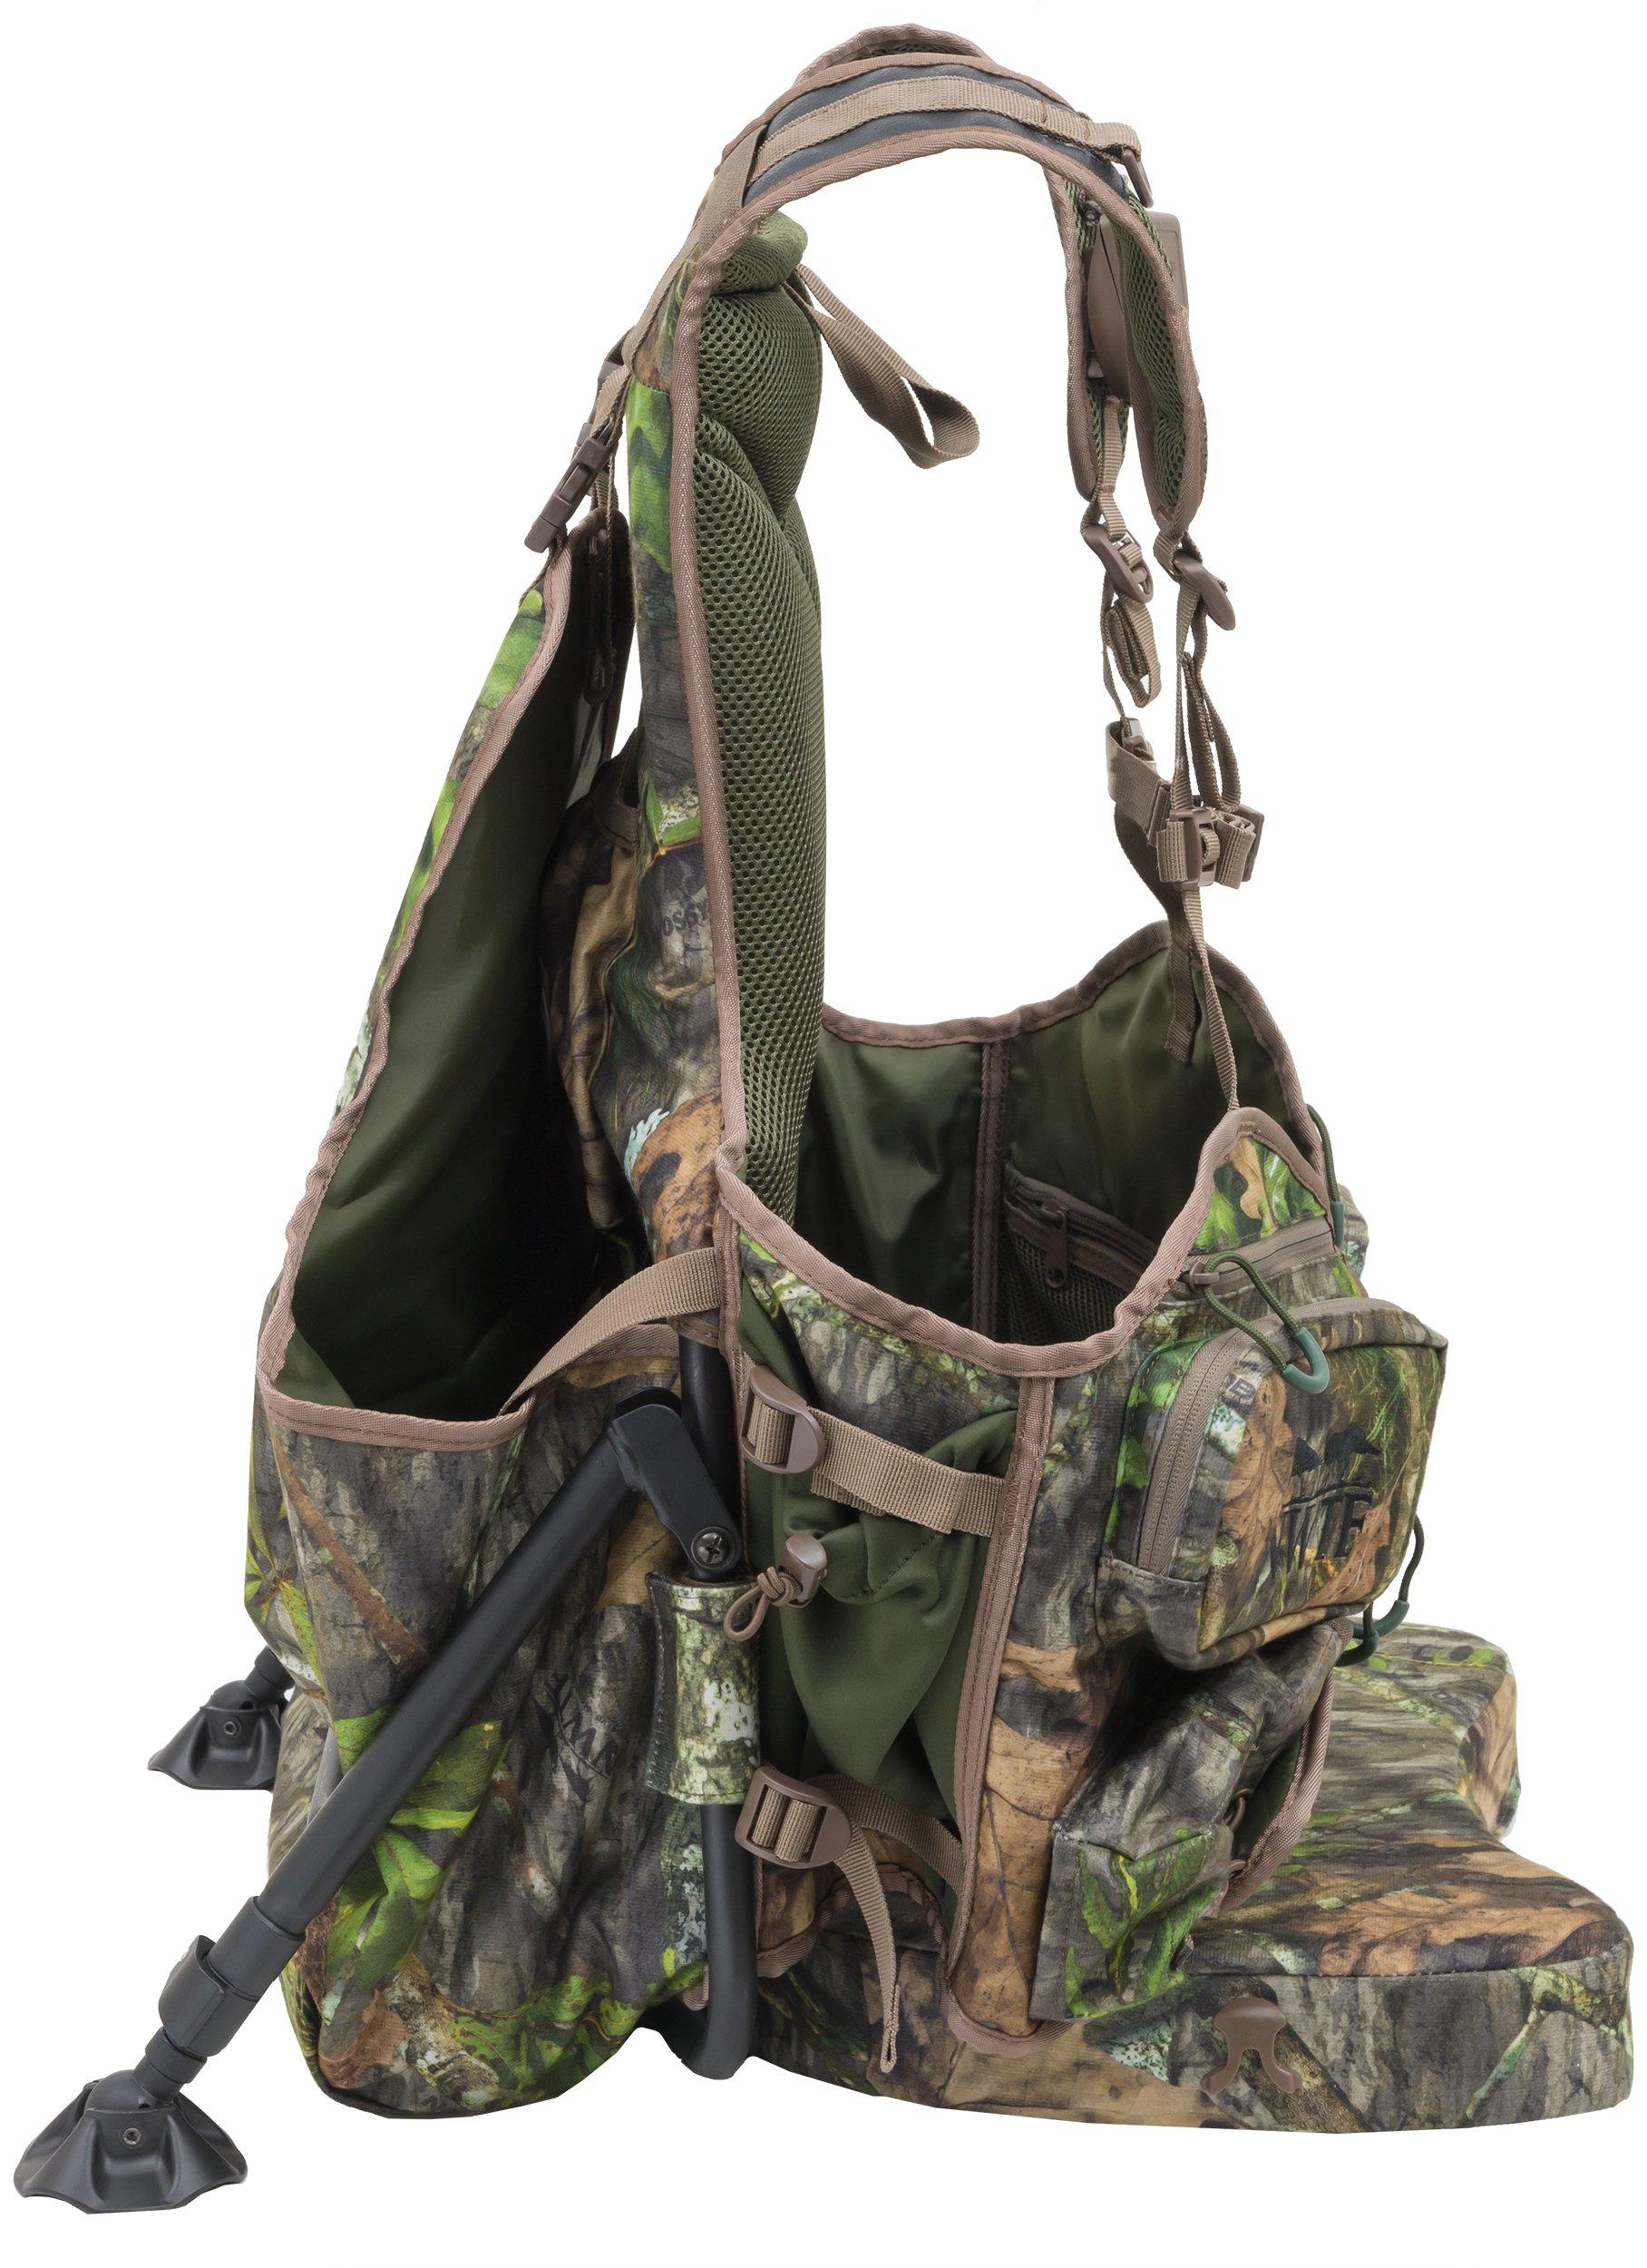 ALPS OutdoorZ NWTF Grand Slam Turkey Vest Standard, Mossy Oak Obsession by ALPS OutdoorZ (Image #3)